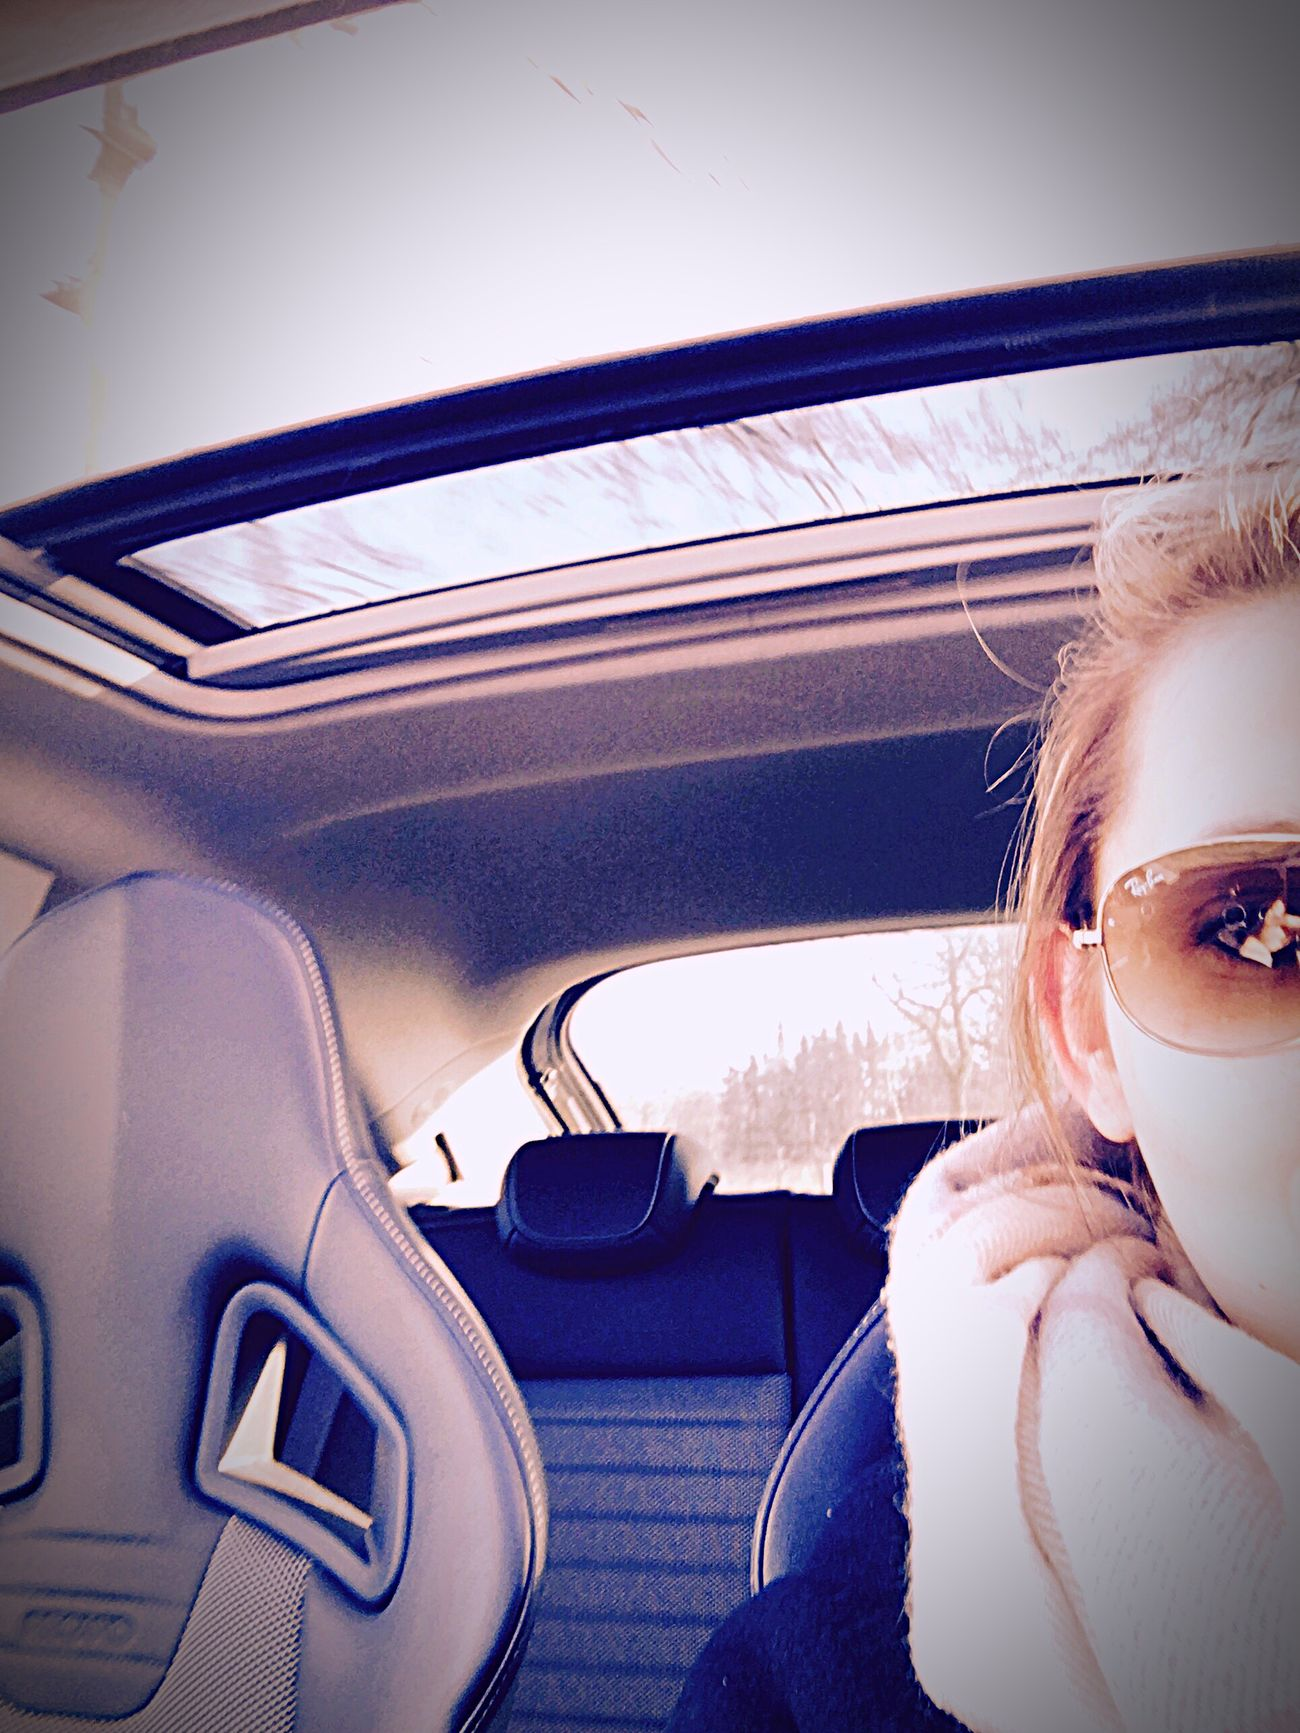 Dach auf!Die Sonne ☀️ scheint! Car Transportation Car Interior Vehicle Interior One Person Travel Opel OPC Corsa Women Journey One Woman Only Leisure Activity Real People Day Only Women Driving People Steering Wheel Adults Only Human Body Part Adult